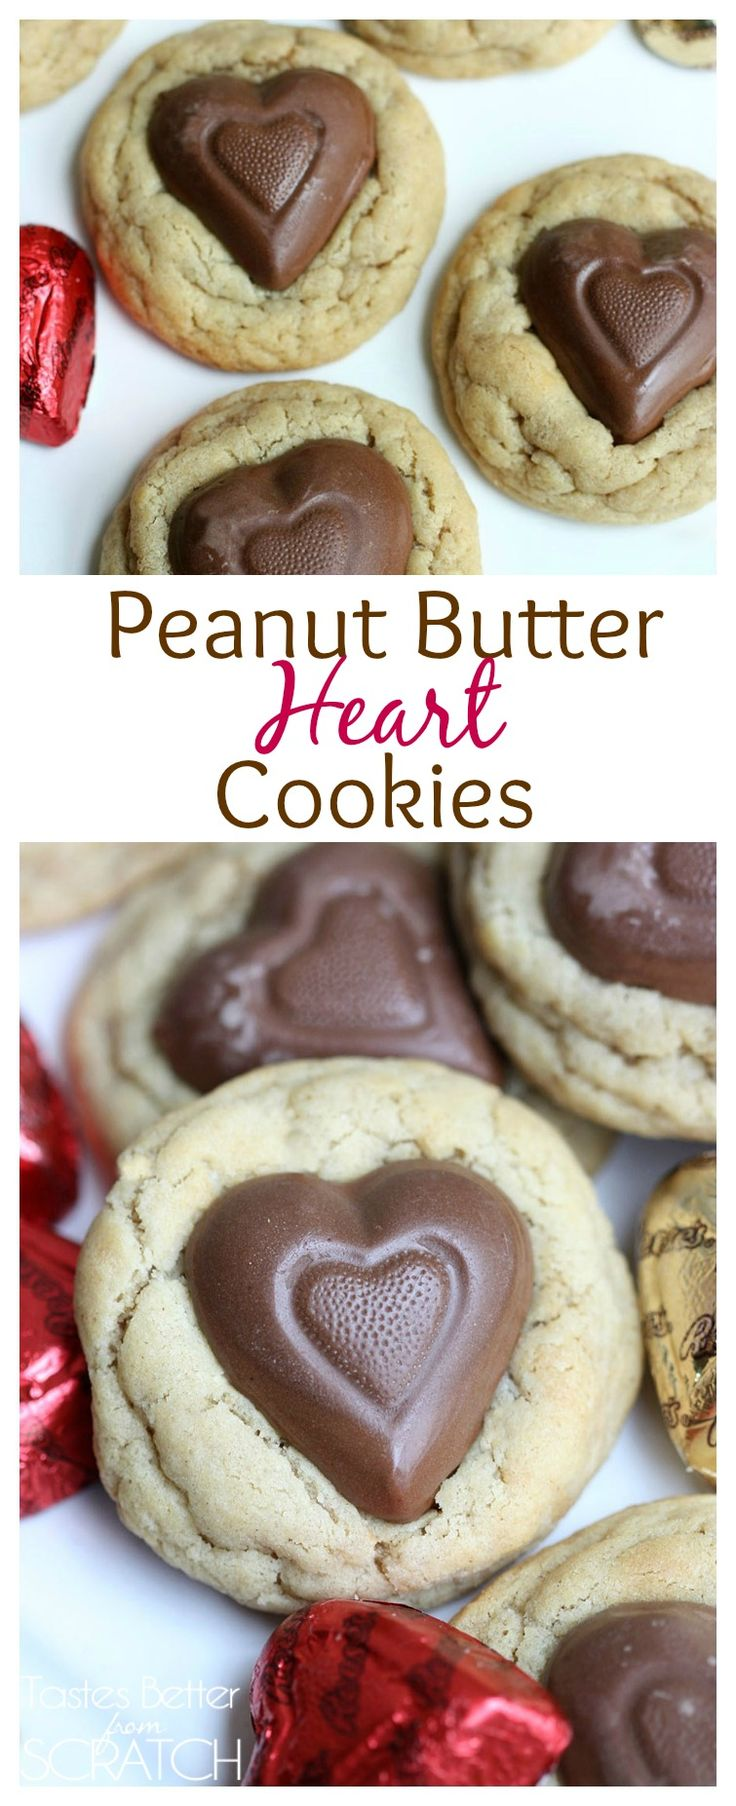 The BEST Peanut Butter Cookies with a Reese's heart in the center. On MyRecipeMagic.com